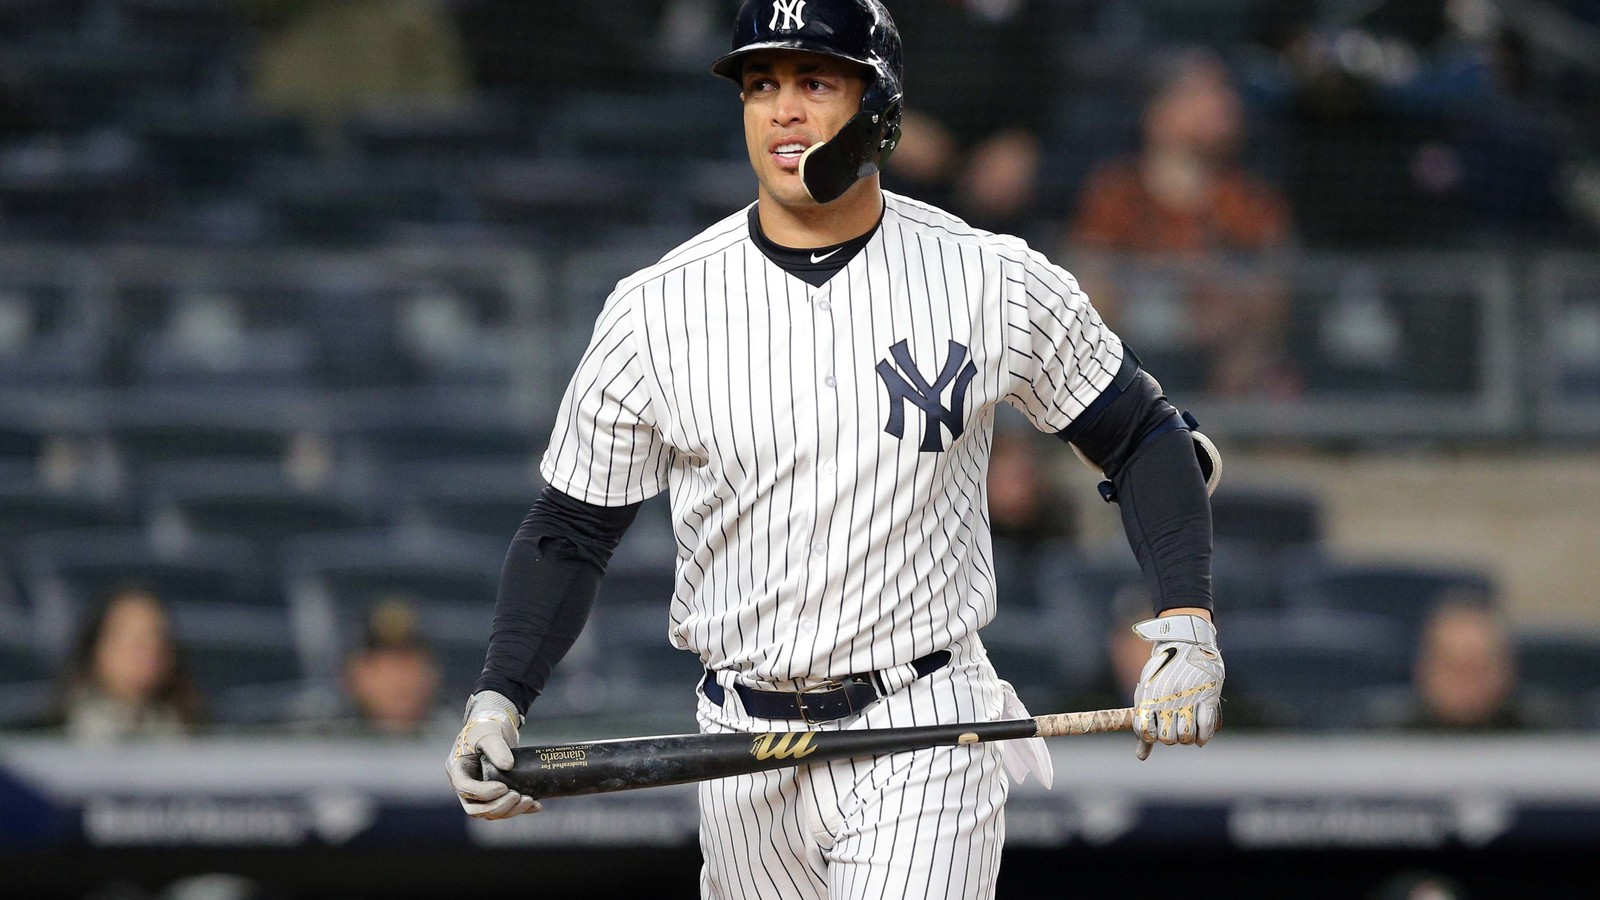 Image result for 2018 yankees striking out at plate